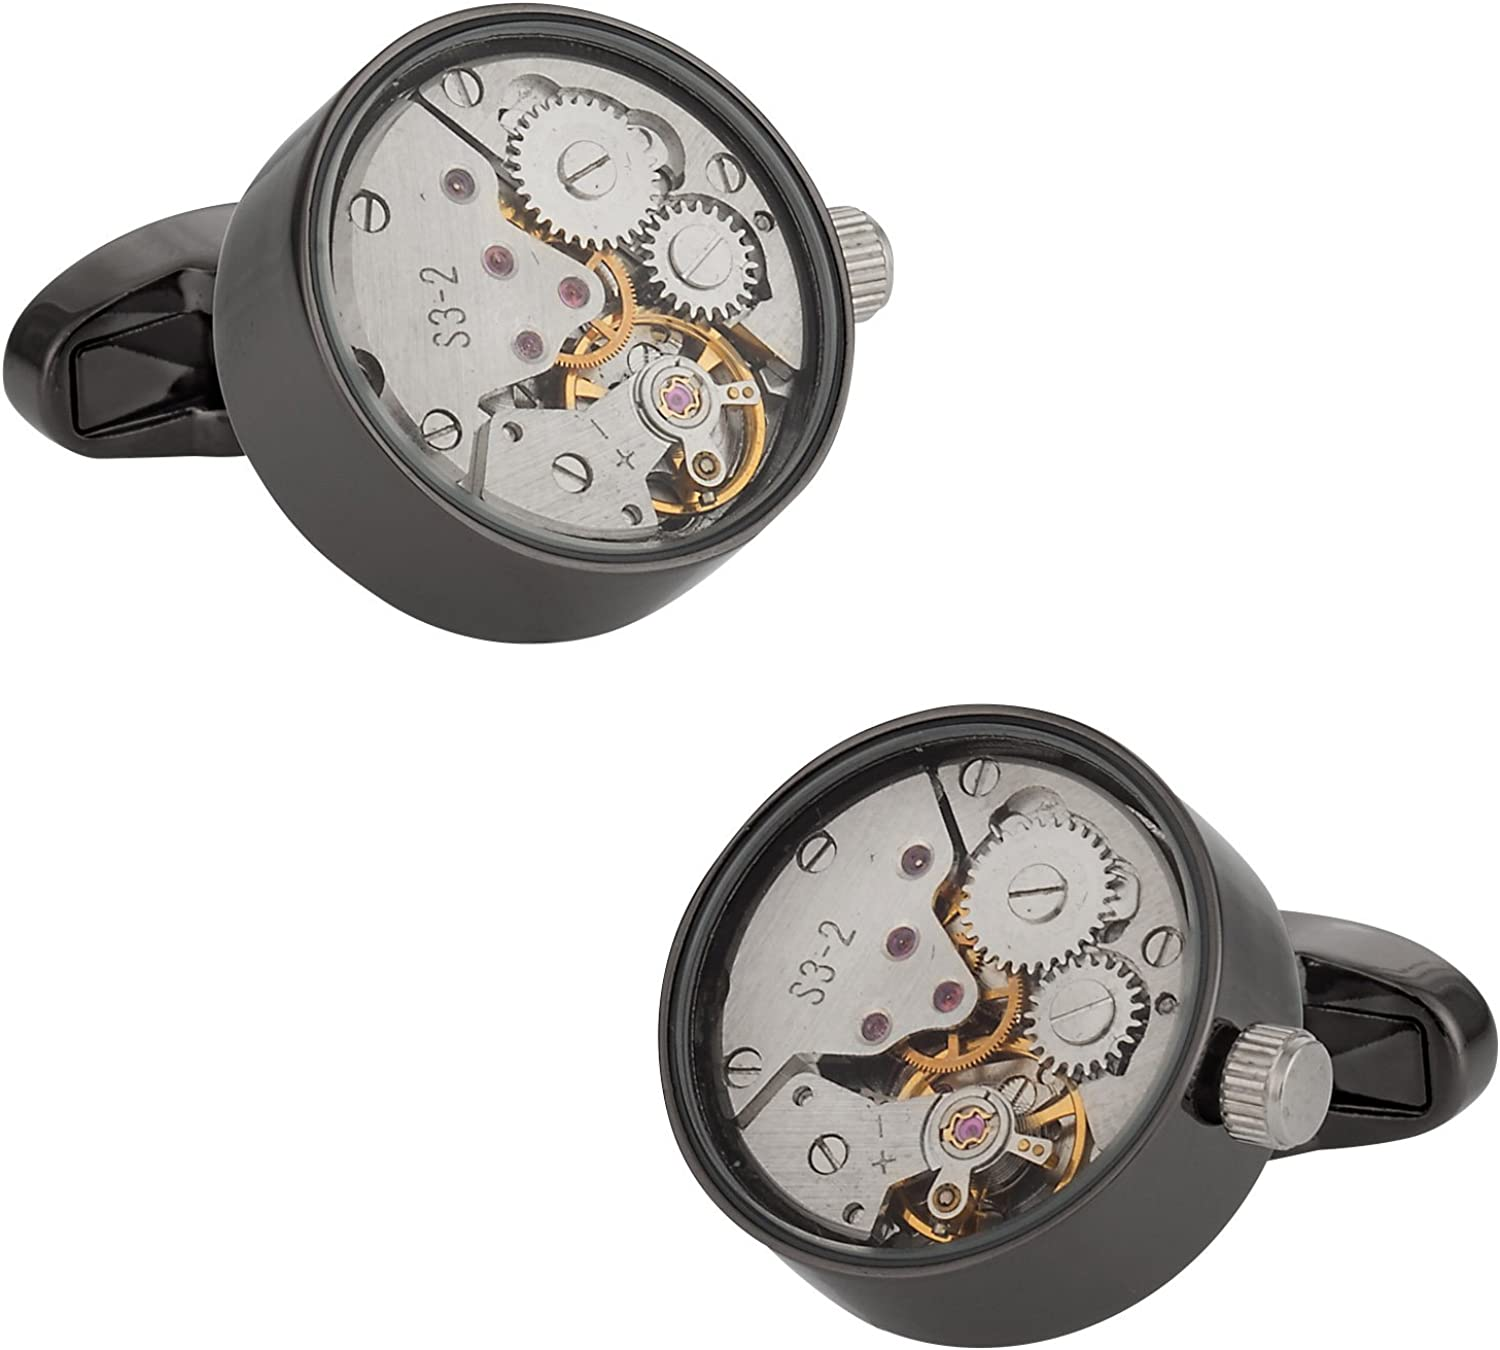 Cuff-Daddy Quality Checked-Gunmetal Working Watch Movement Cufflinks Functioning Steampunk with Glass Cover